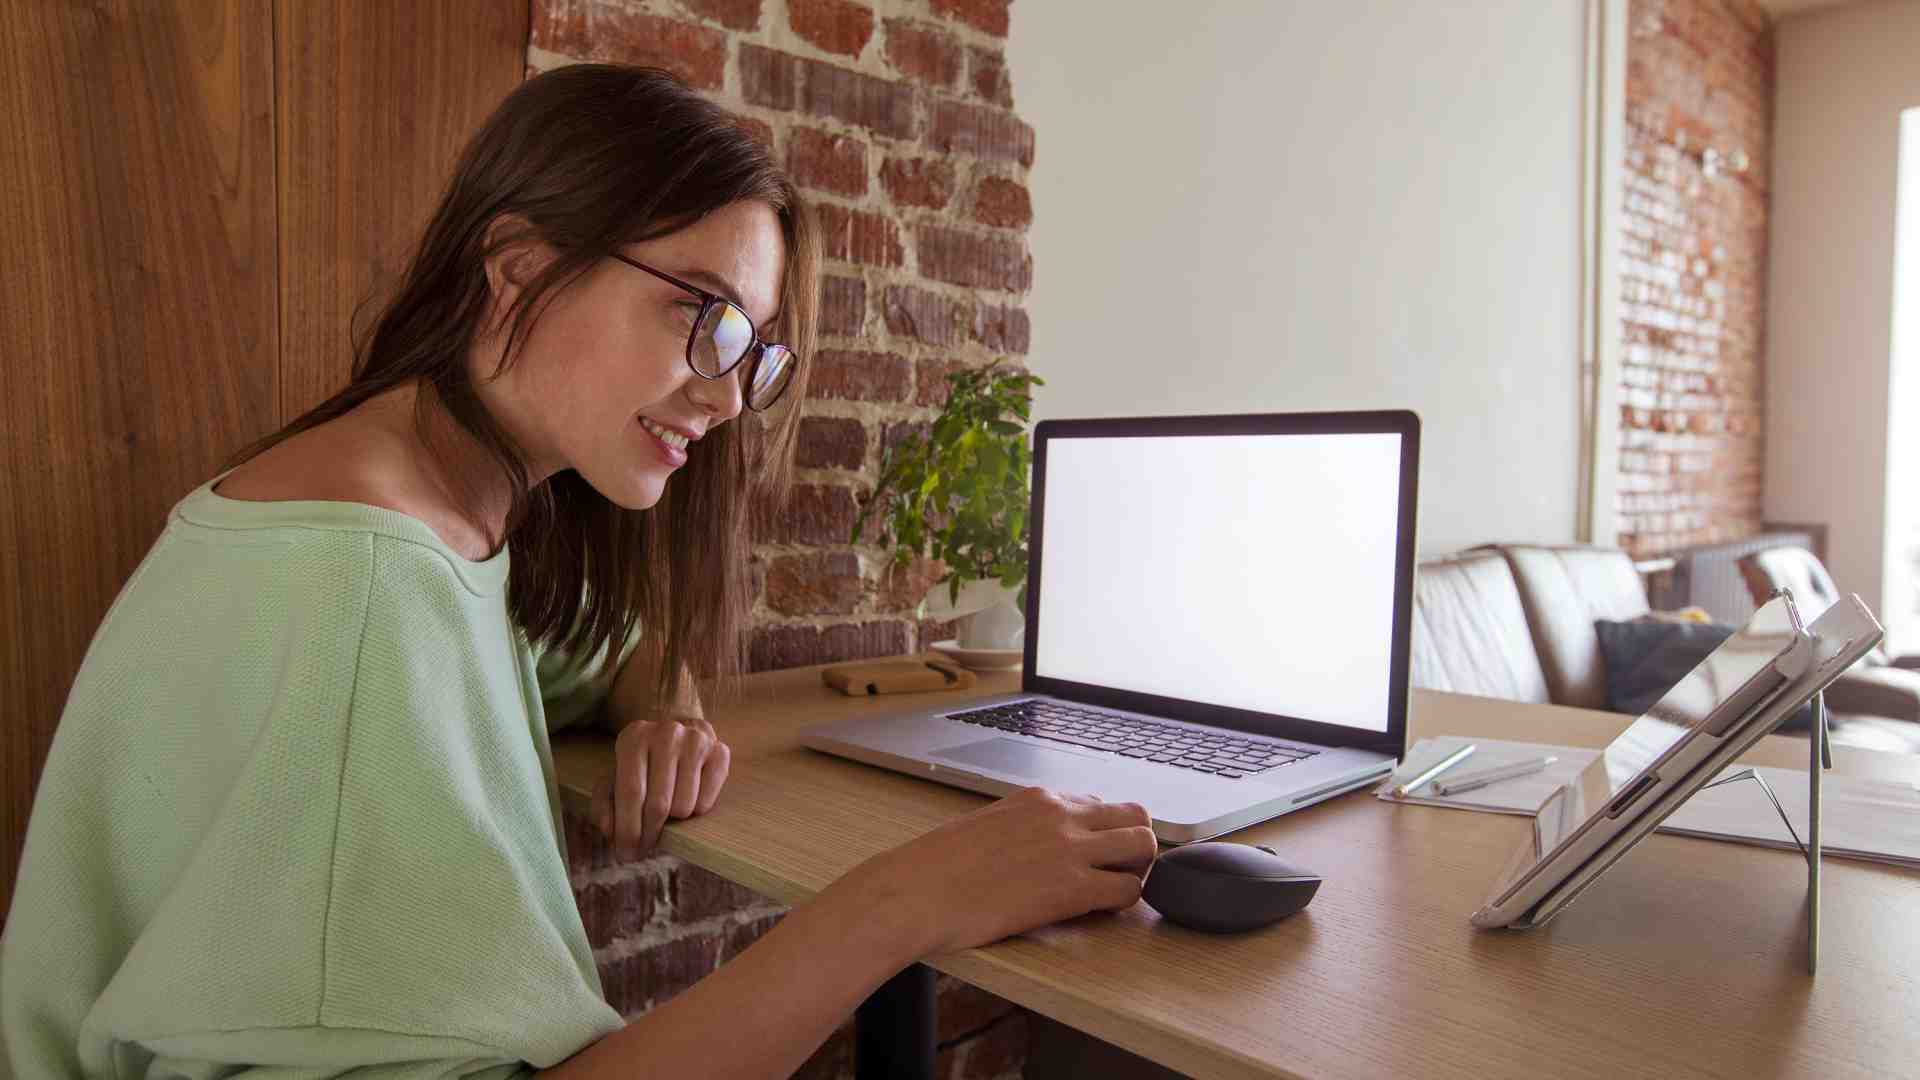 Side view of woman in glasses working at home using laptop and tablet while sitting at table in apartment with brick walls